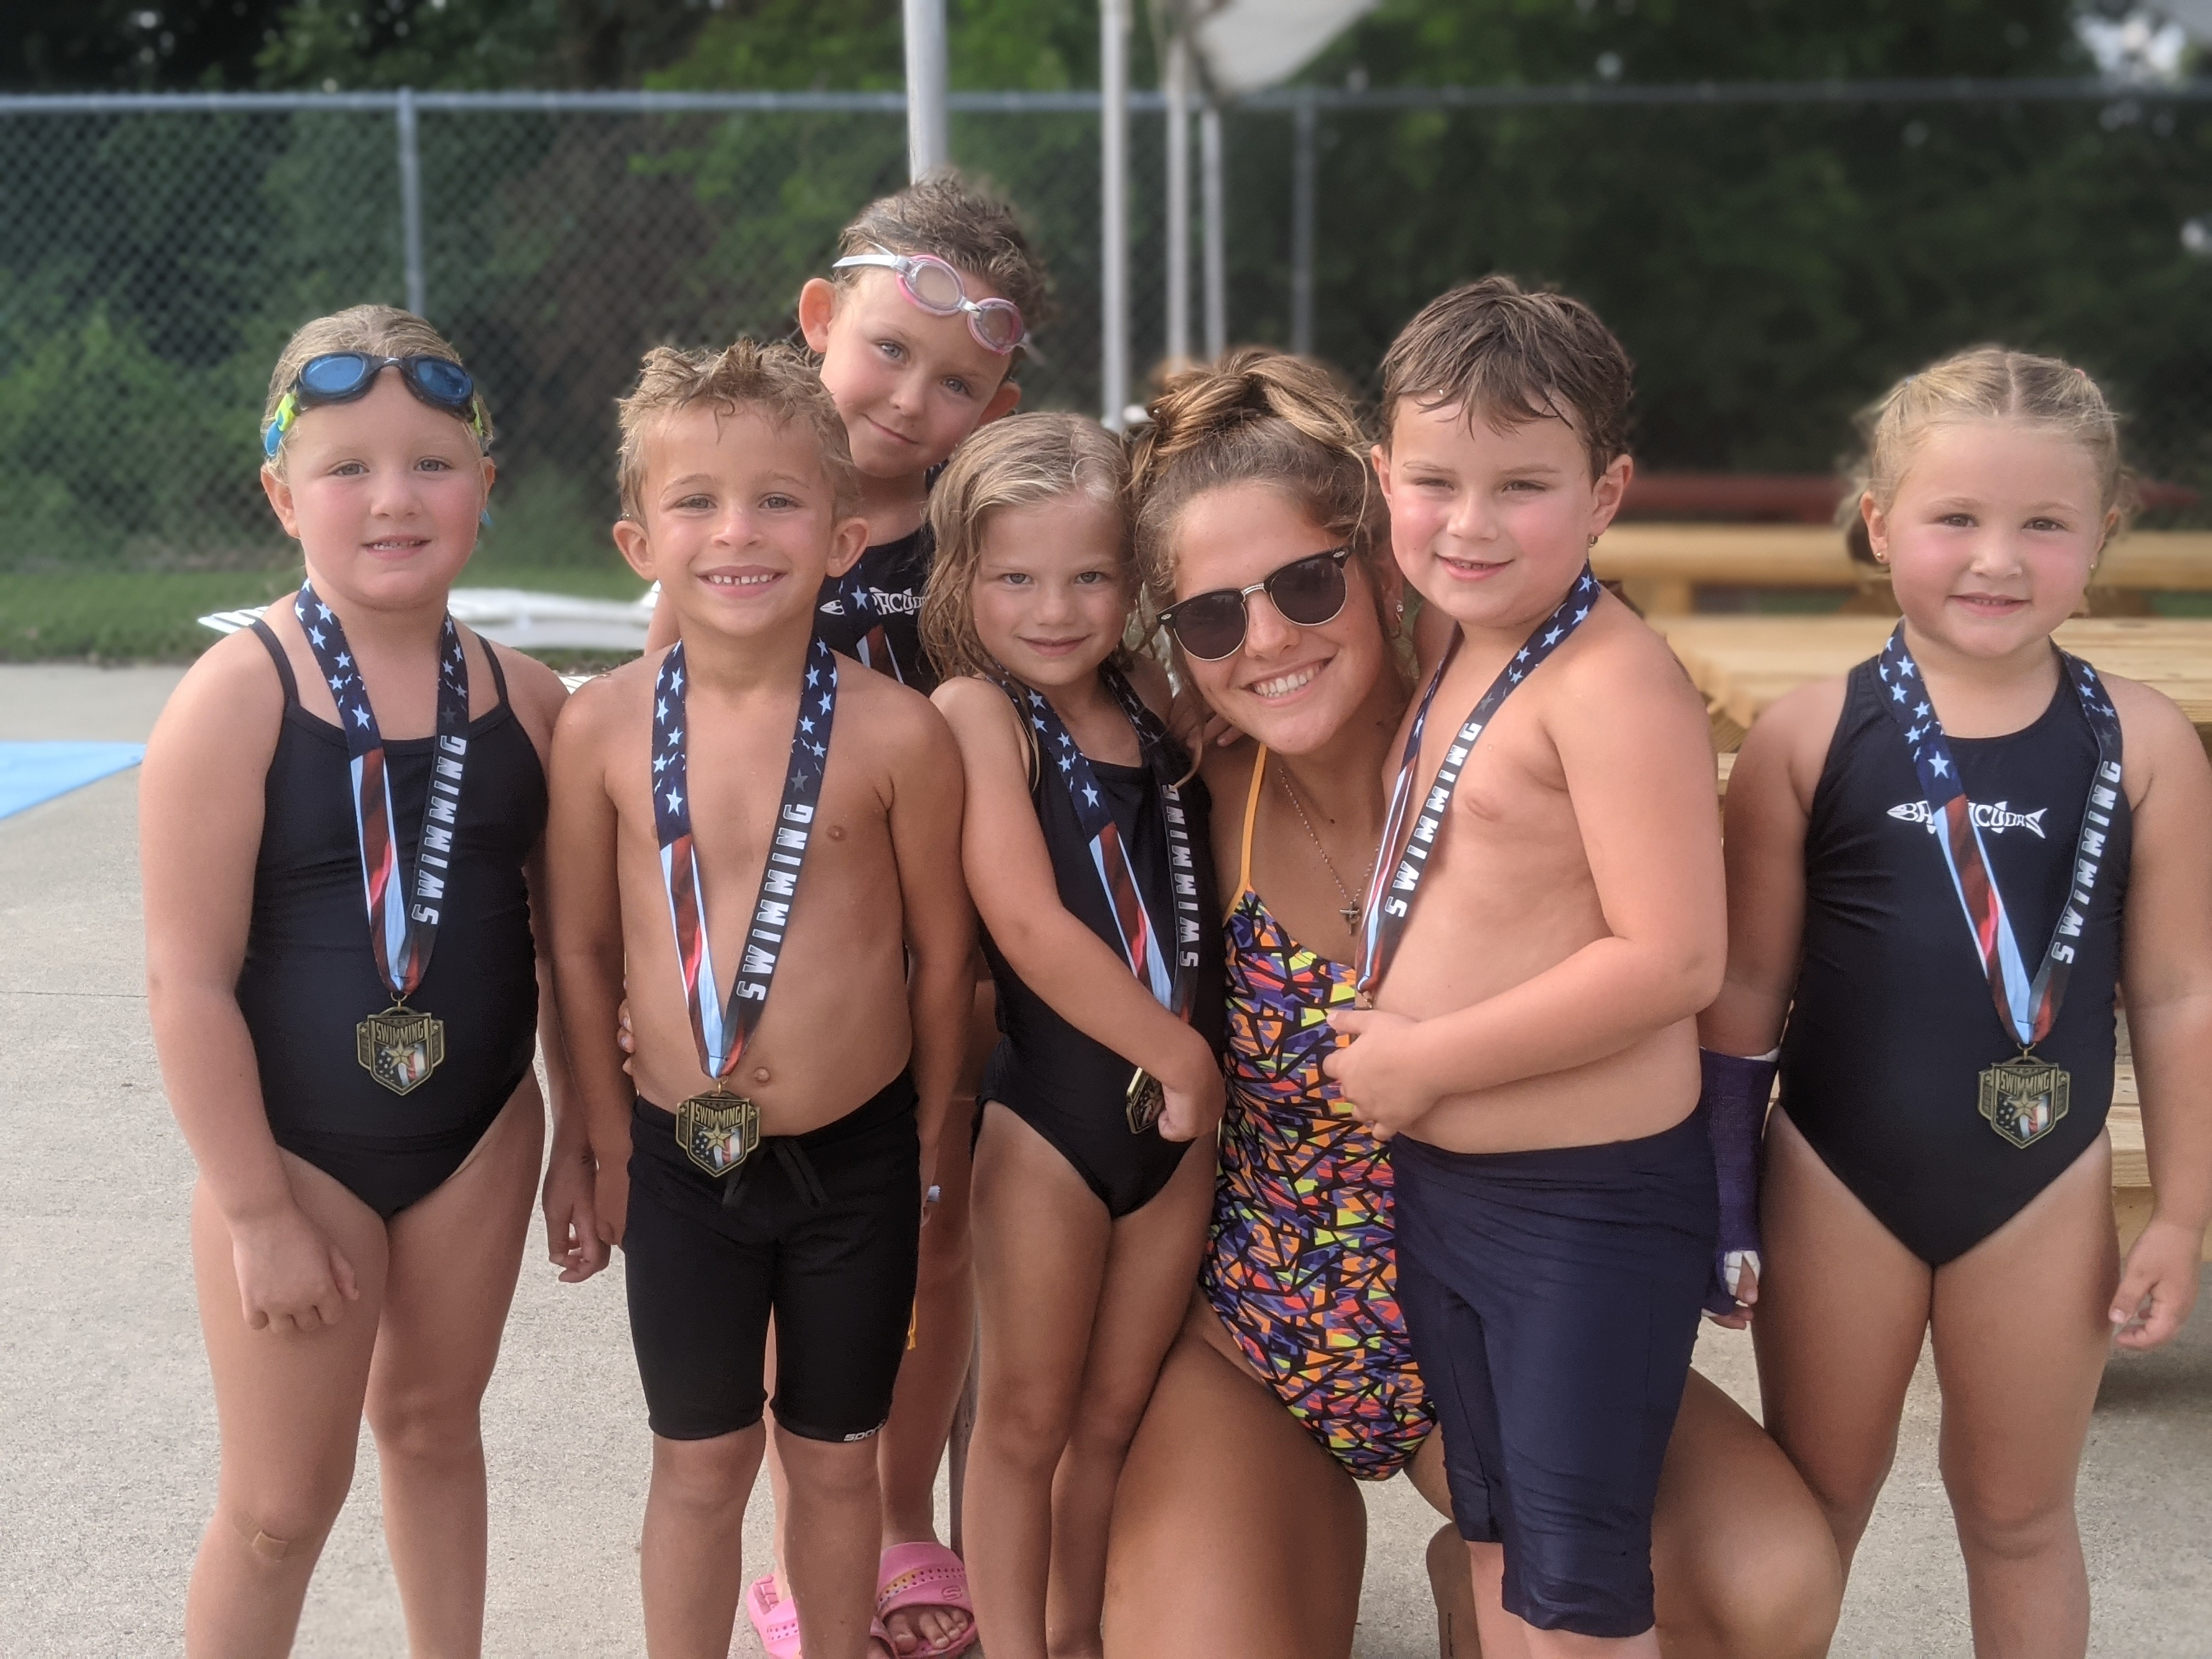 Congrats to our newest 6 & Under swimmers for swimming across the pool by themselves this year!!